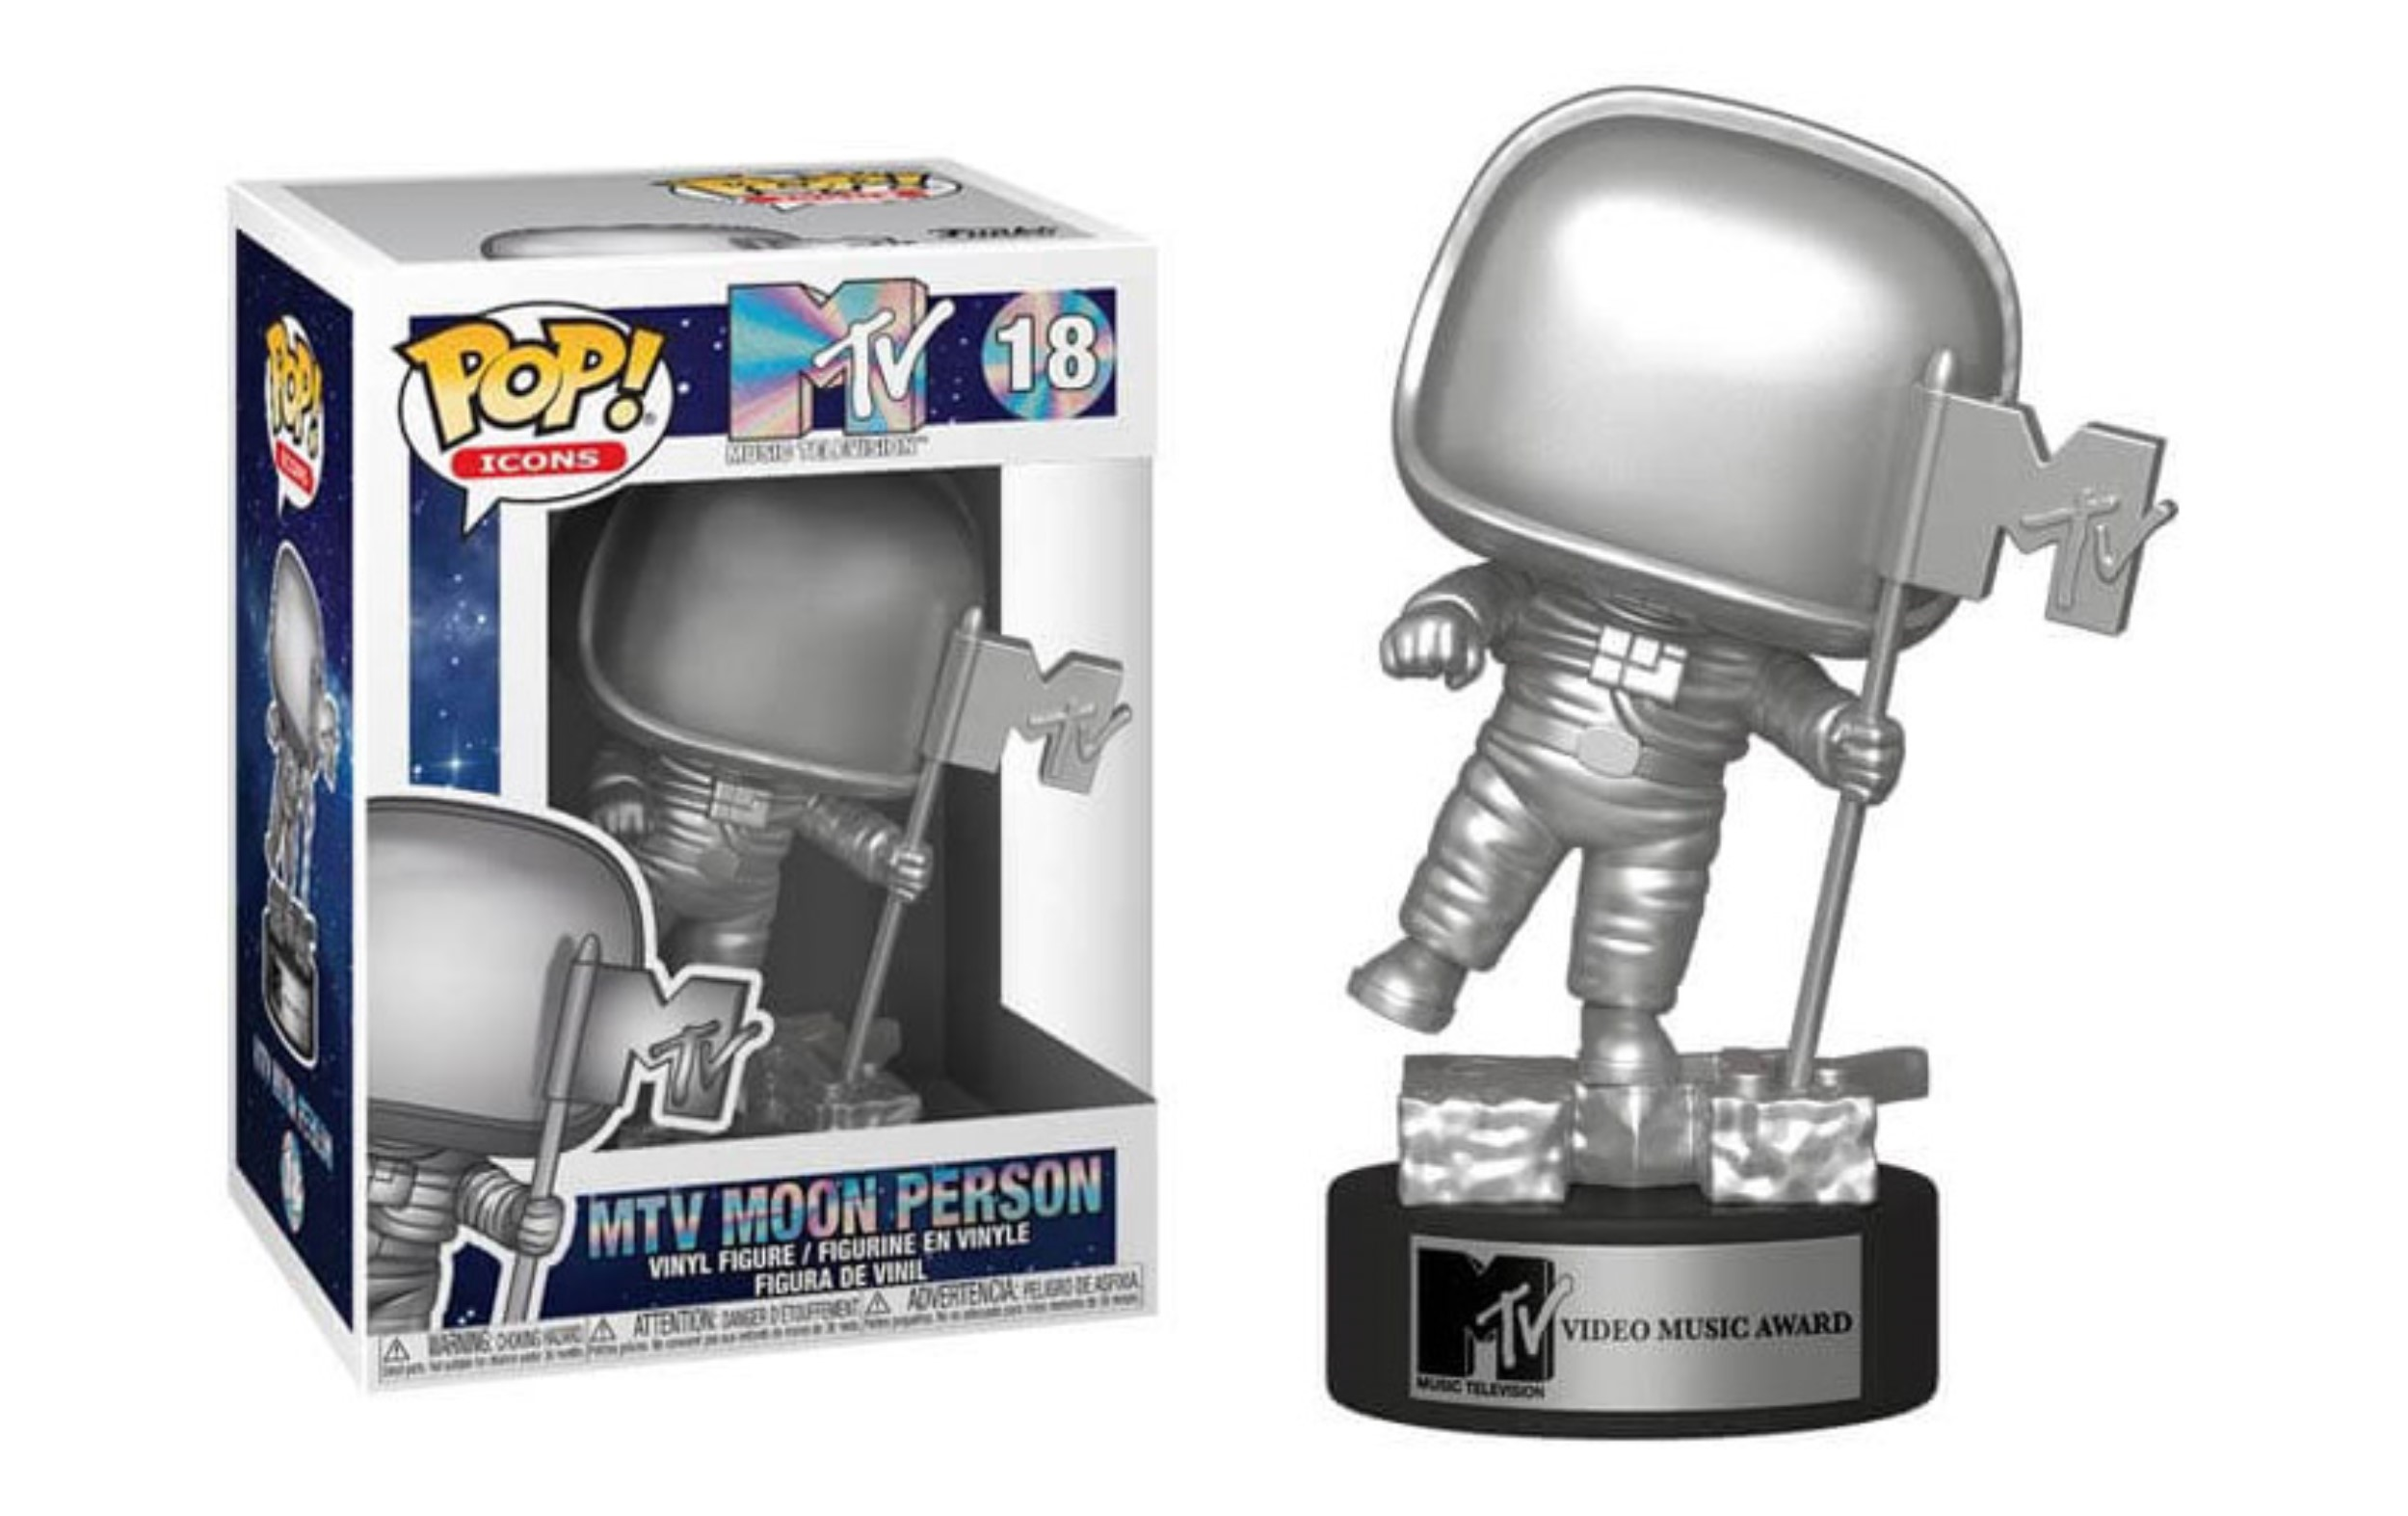 MTV Moon Person 18 Funko Pop Vinyl Figure